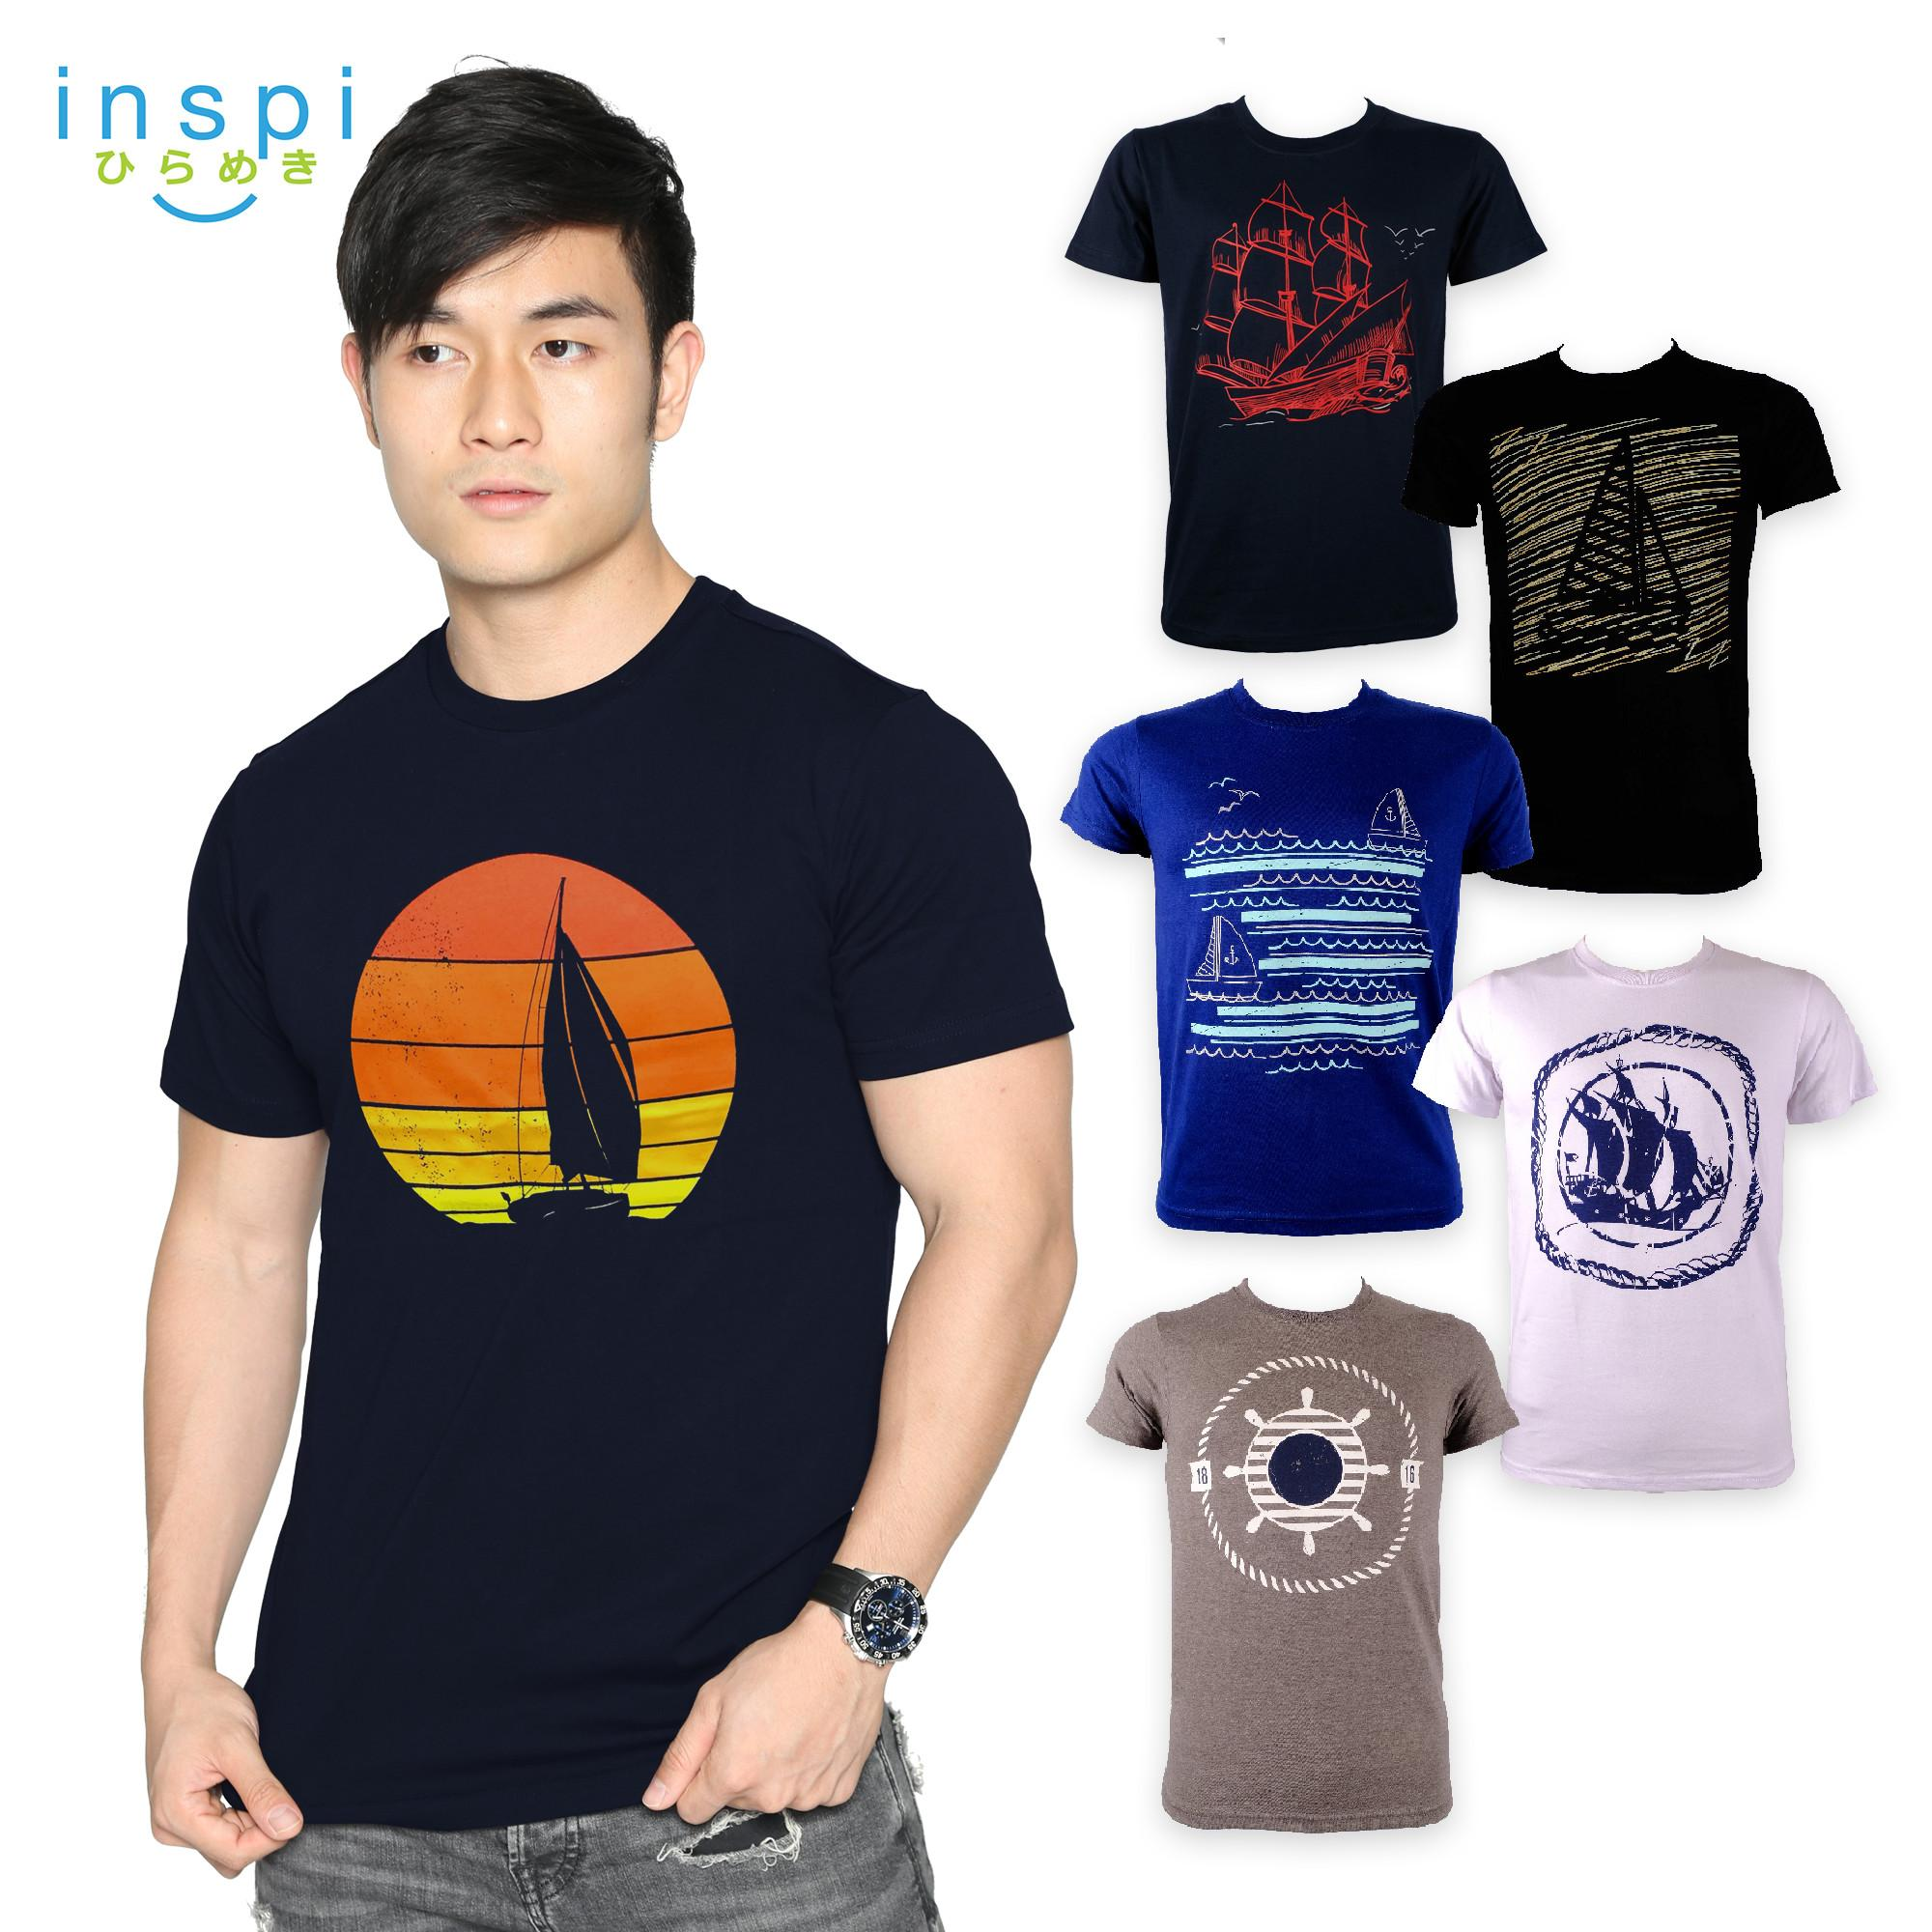 efe831384 INSPI Tees Sailing Collection tshirt printed graphic tee Mens t shirt shirts  for men tshirts sale